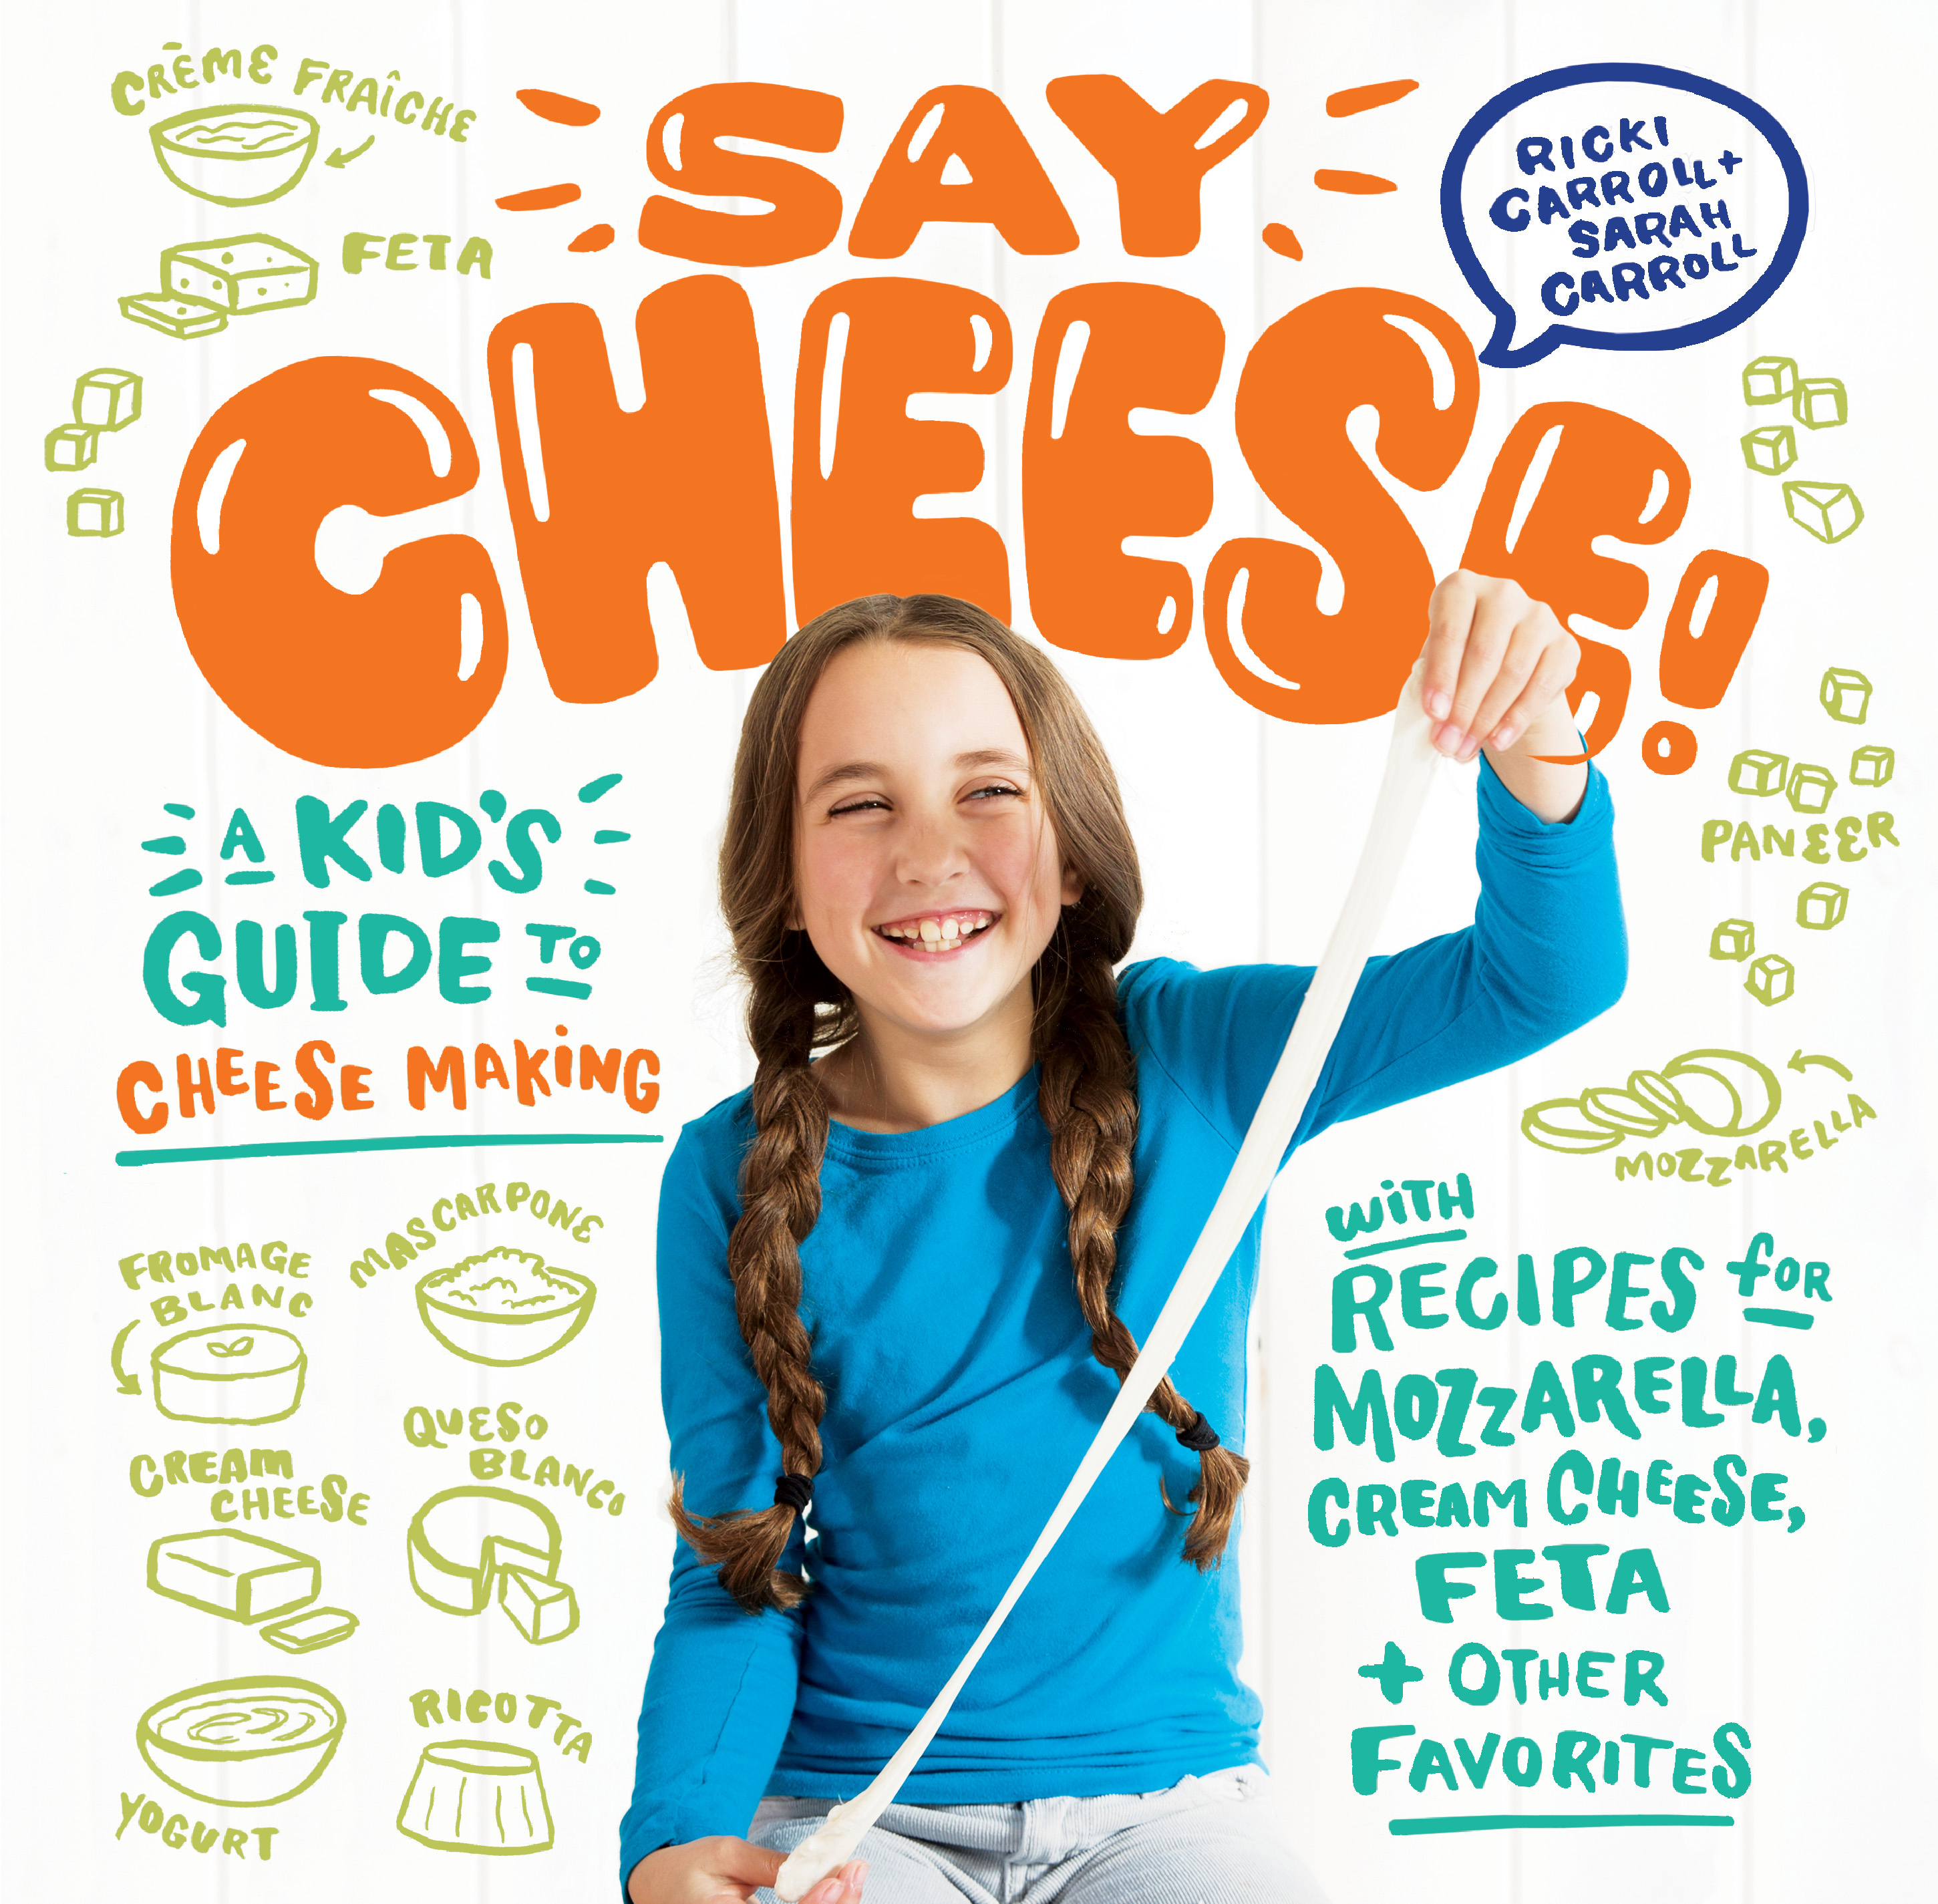 Say Cheese! A Kid's Guide to Cheese Making with Recipes for Mozzarella, Cream Cheese, Feta & Other Favorites - Ricki Carroll